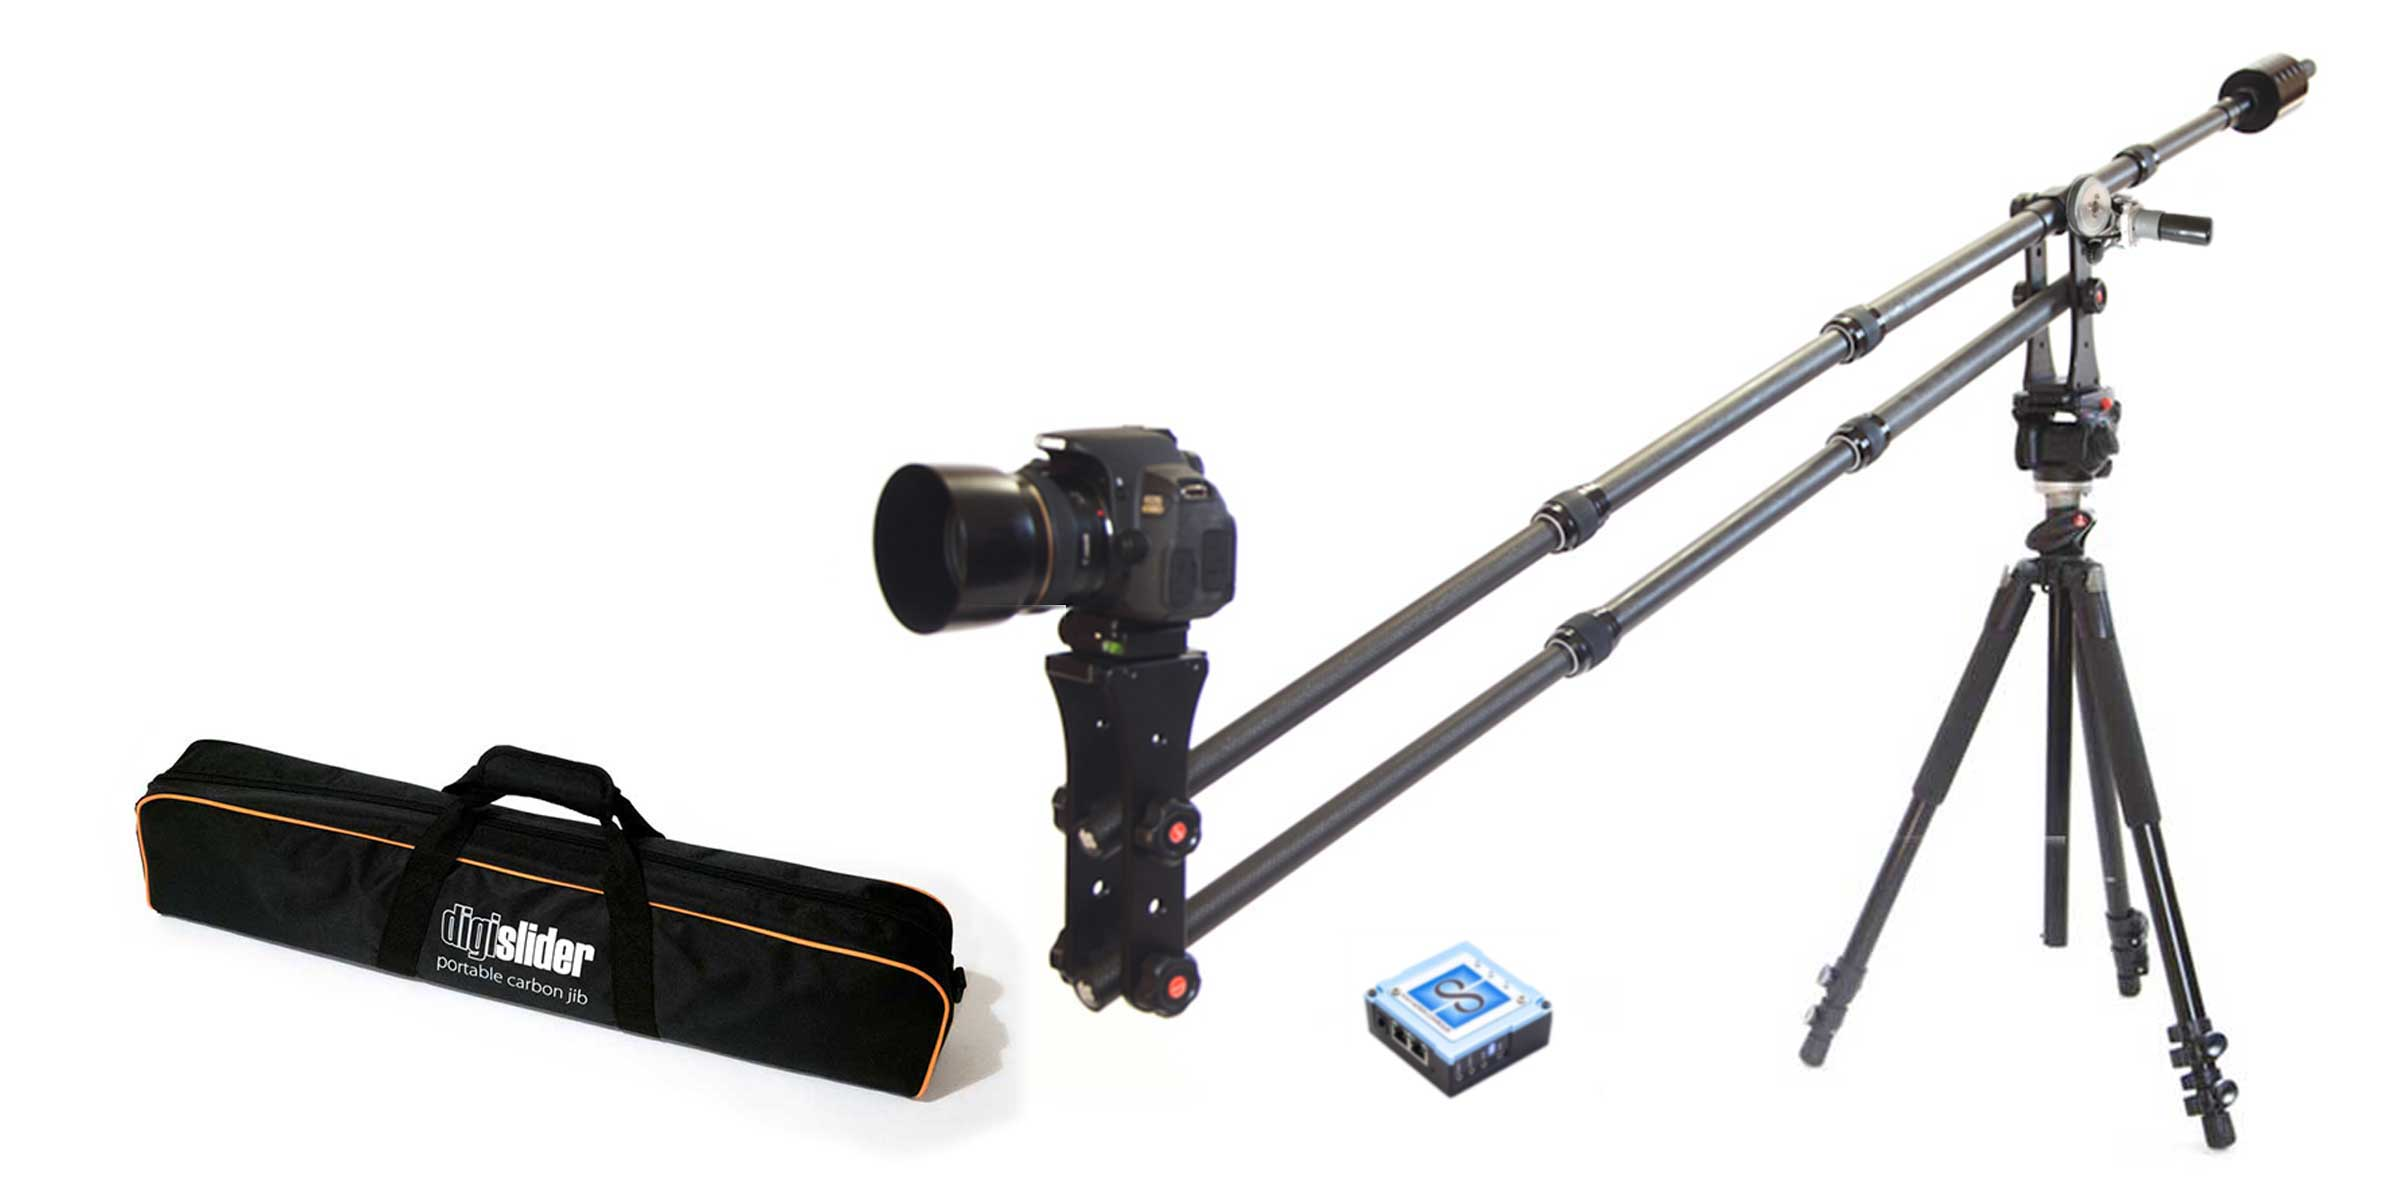 Digislider Motorized Jib with Dynamic Perception's NMX Controller